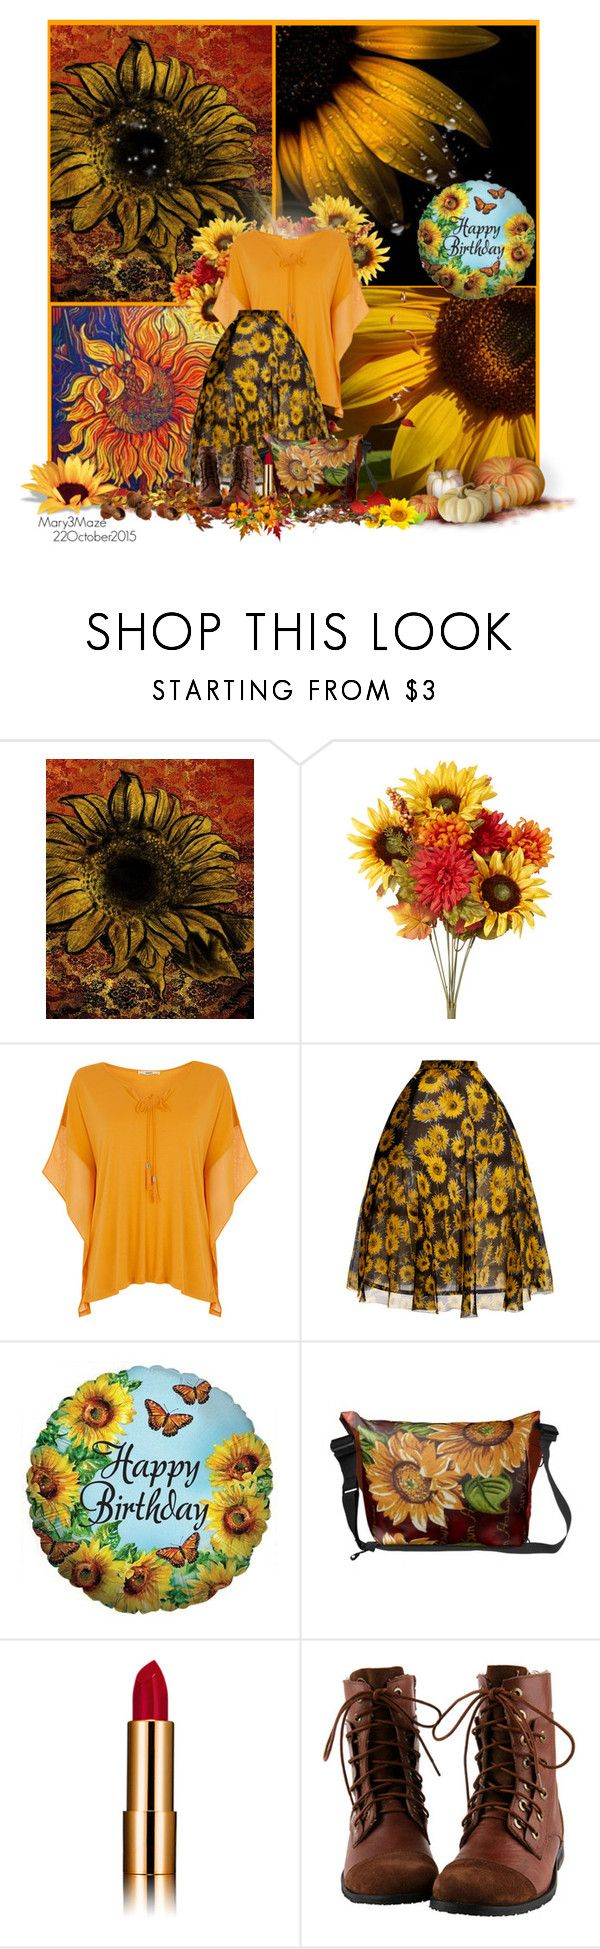 """""""Happy Birthday October Girls - mine is today, 22October"""" by octobermaze ❤ liked on Polyvore featuring WALL, Oasis, Delpozo, birthday, happybirthday and october"""